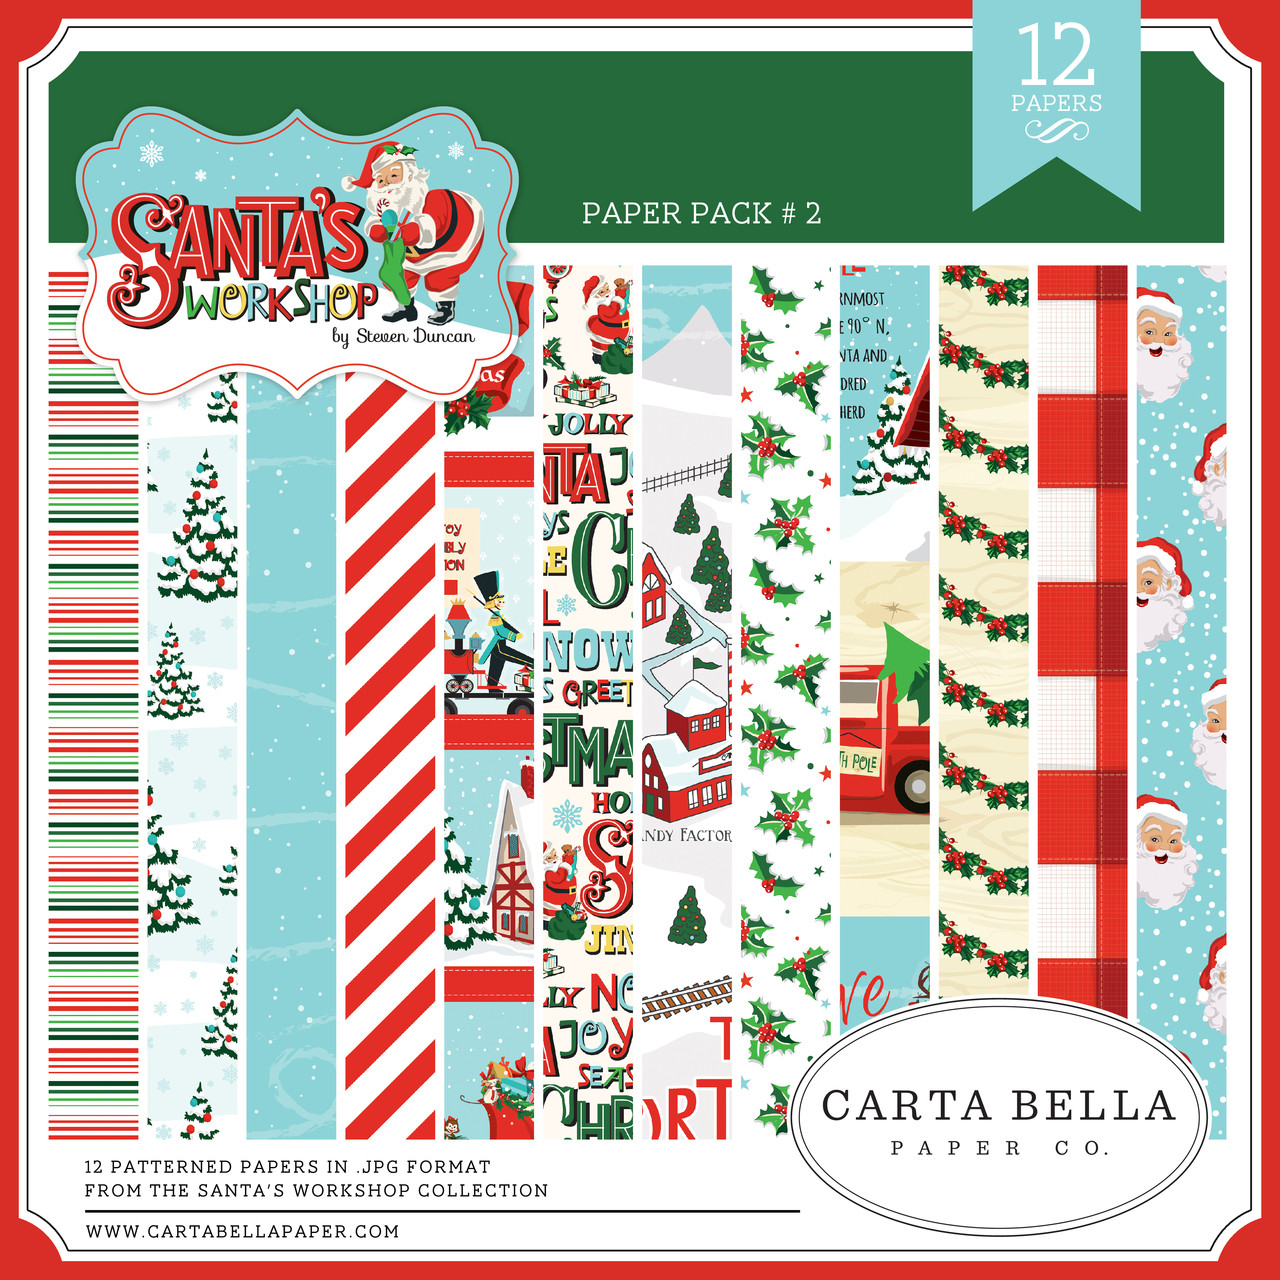 Santa's Workshop Paper Pack #2